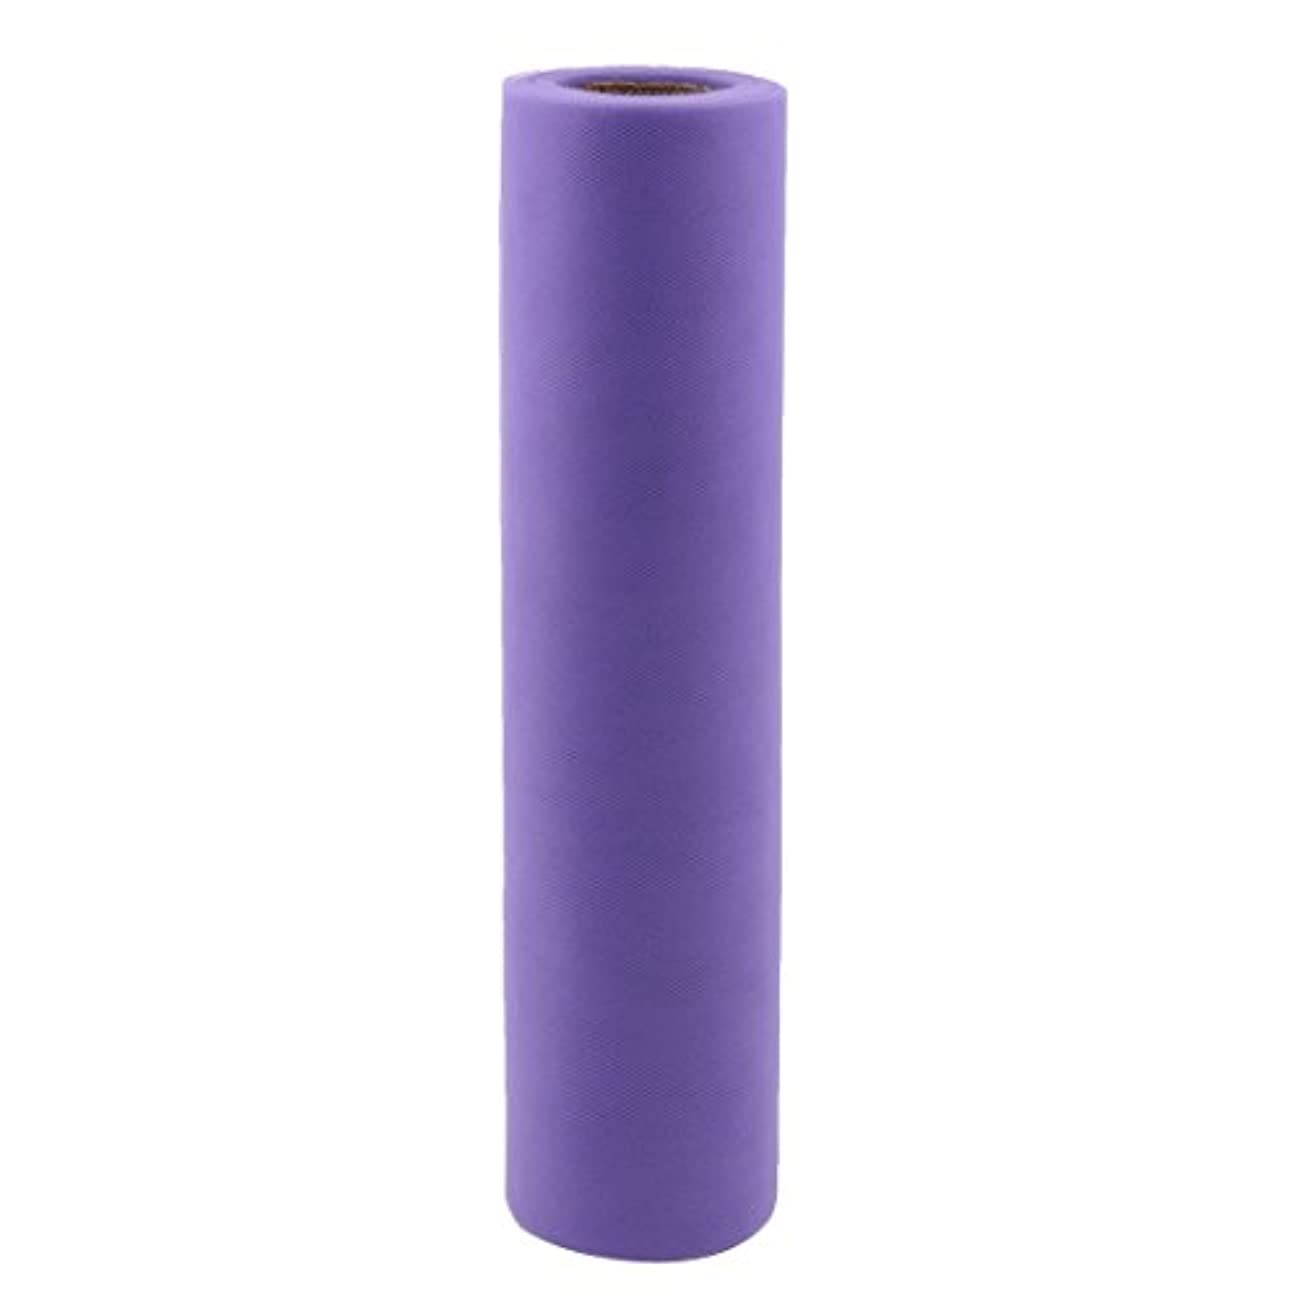 uxcell? Gift Packing Wrapping Sewing DIY Decor Voile Tulle Spool Roll 12 Inch x 25 Yards Purple